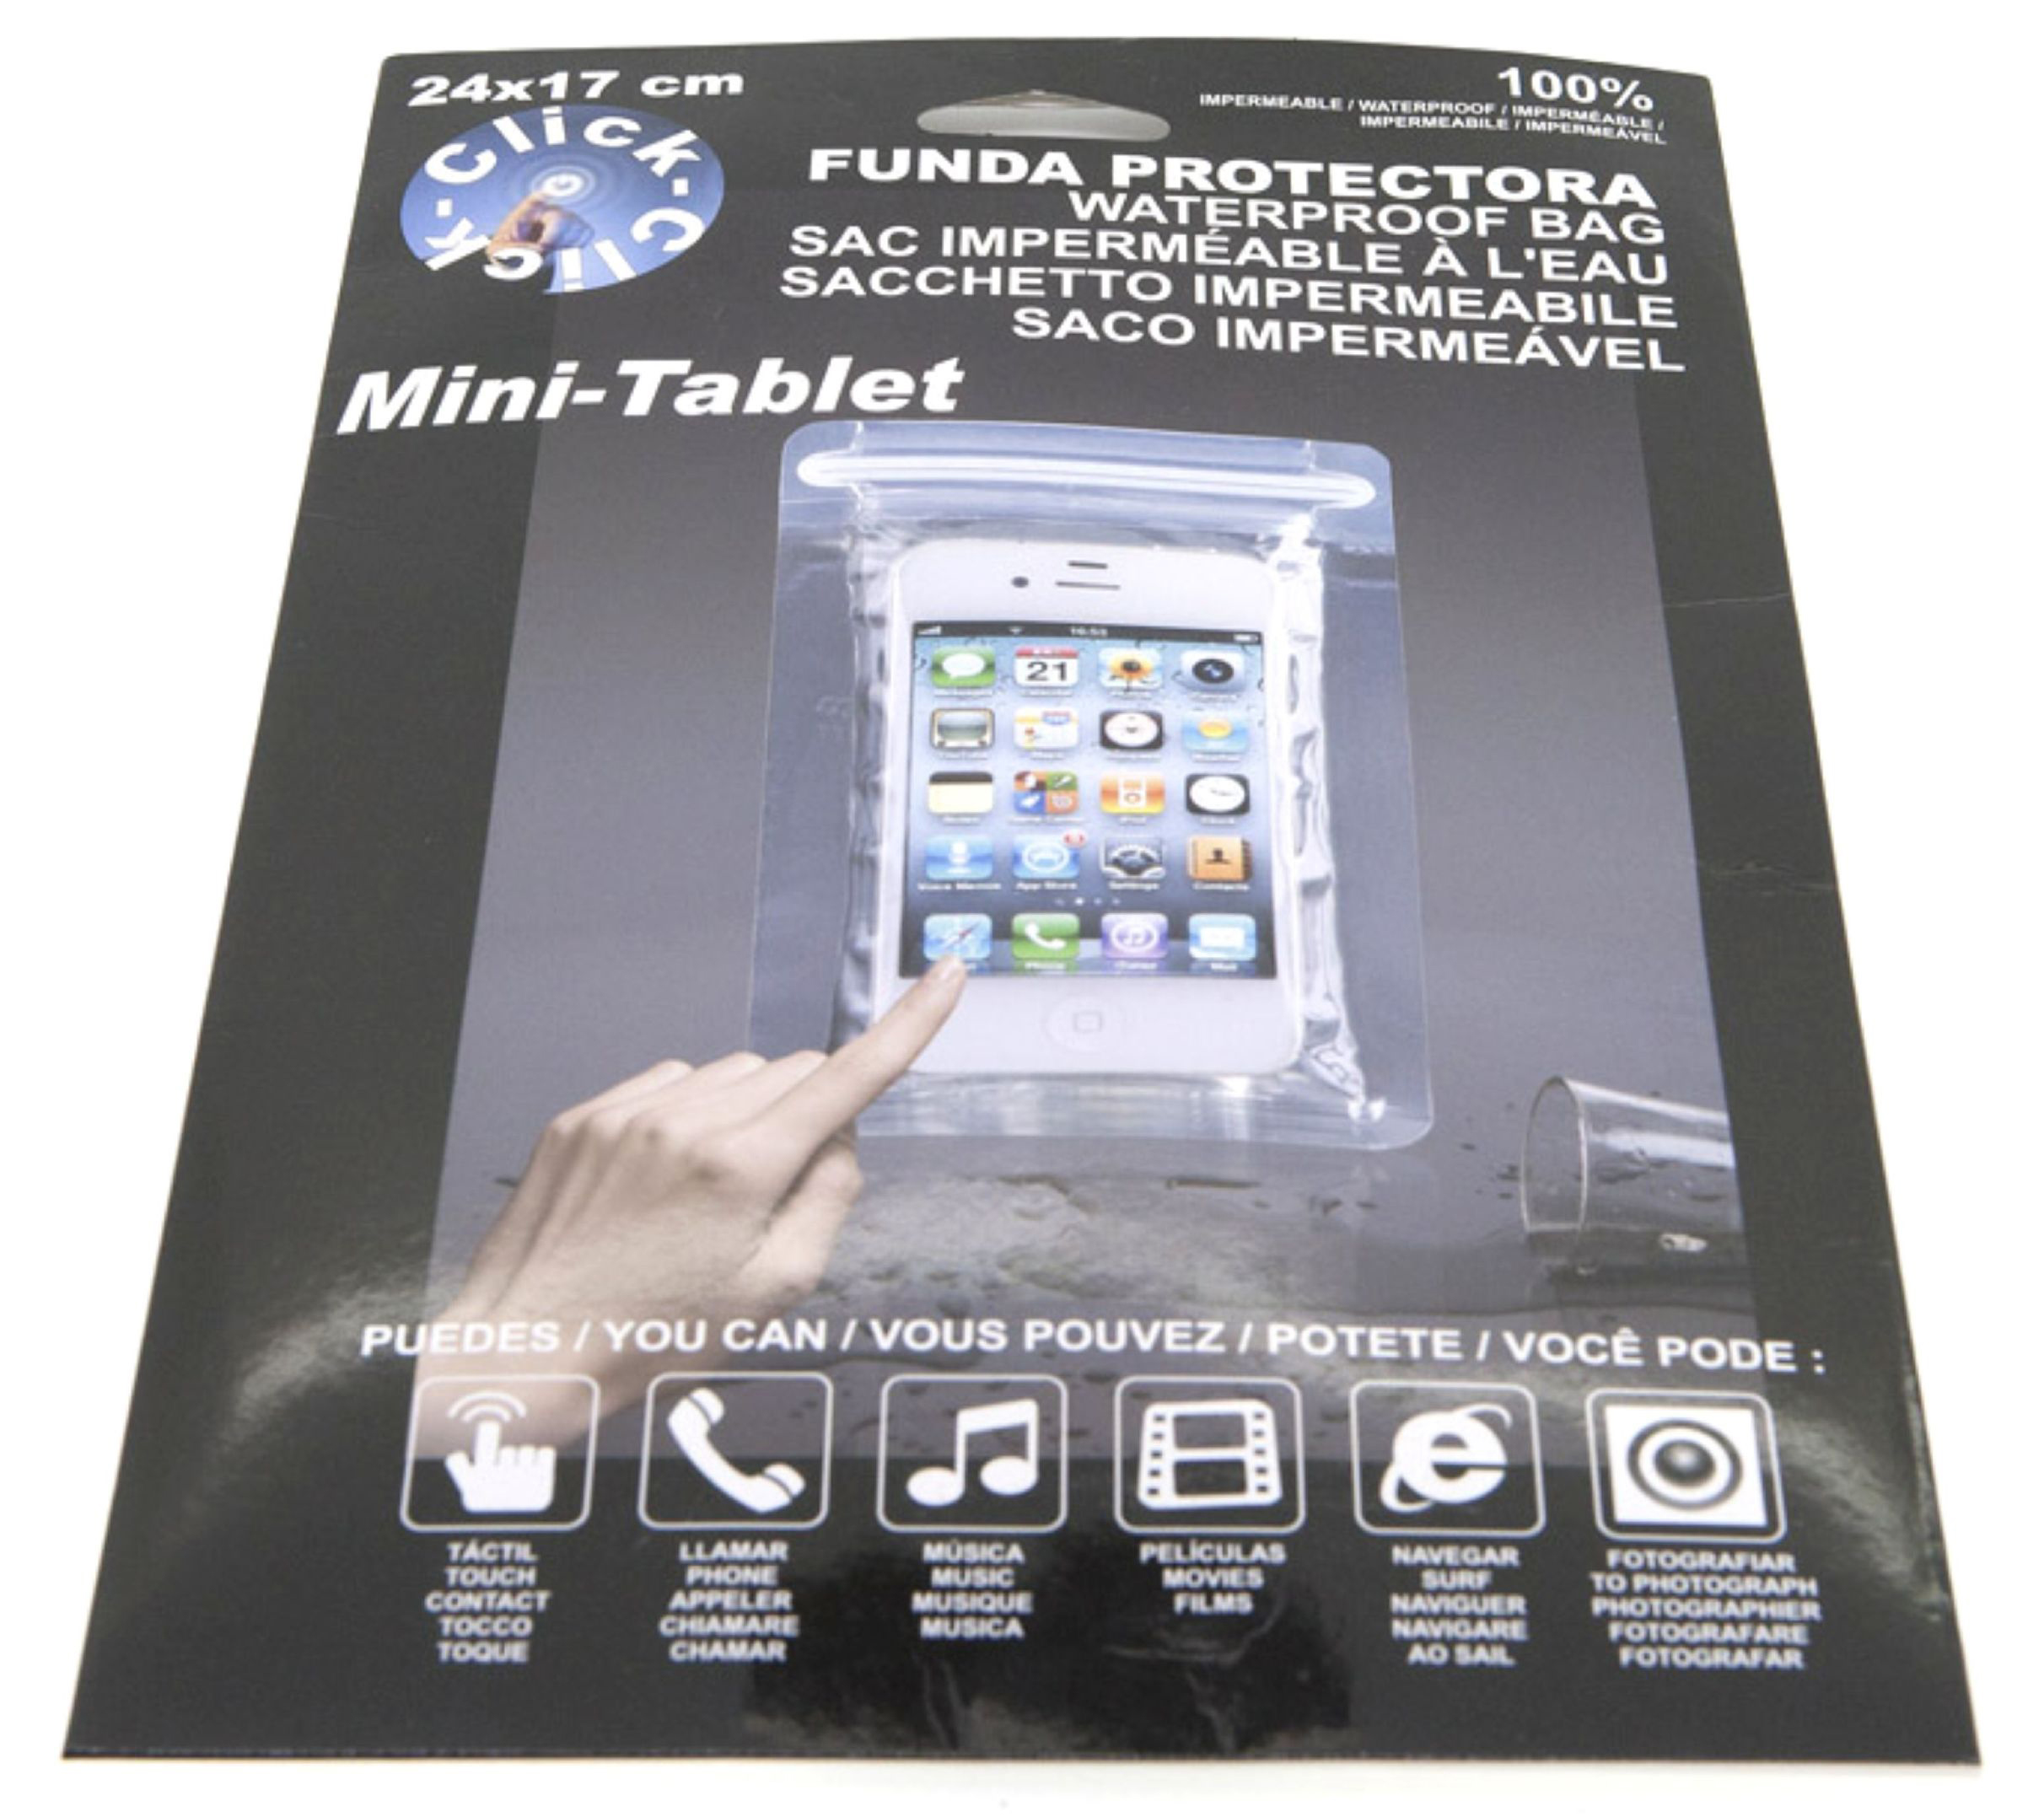 FUNDA PROTECTORA MINI-TABLET 24X17CM.